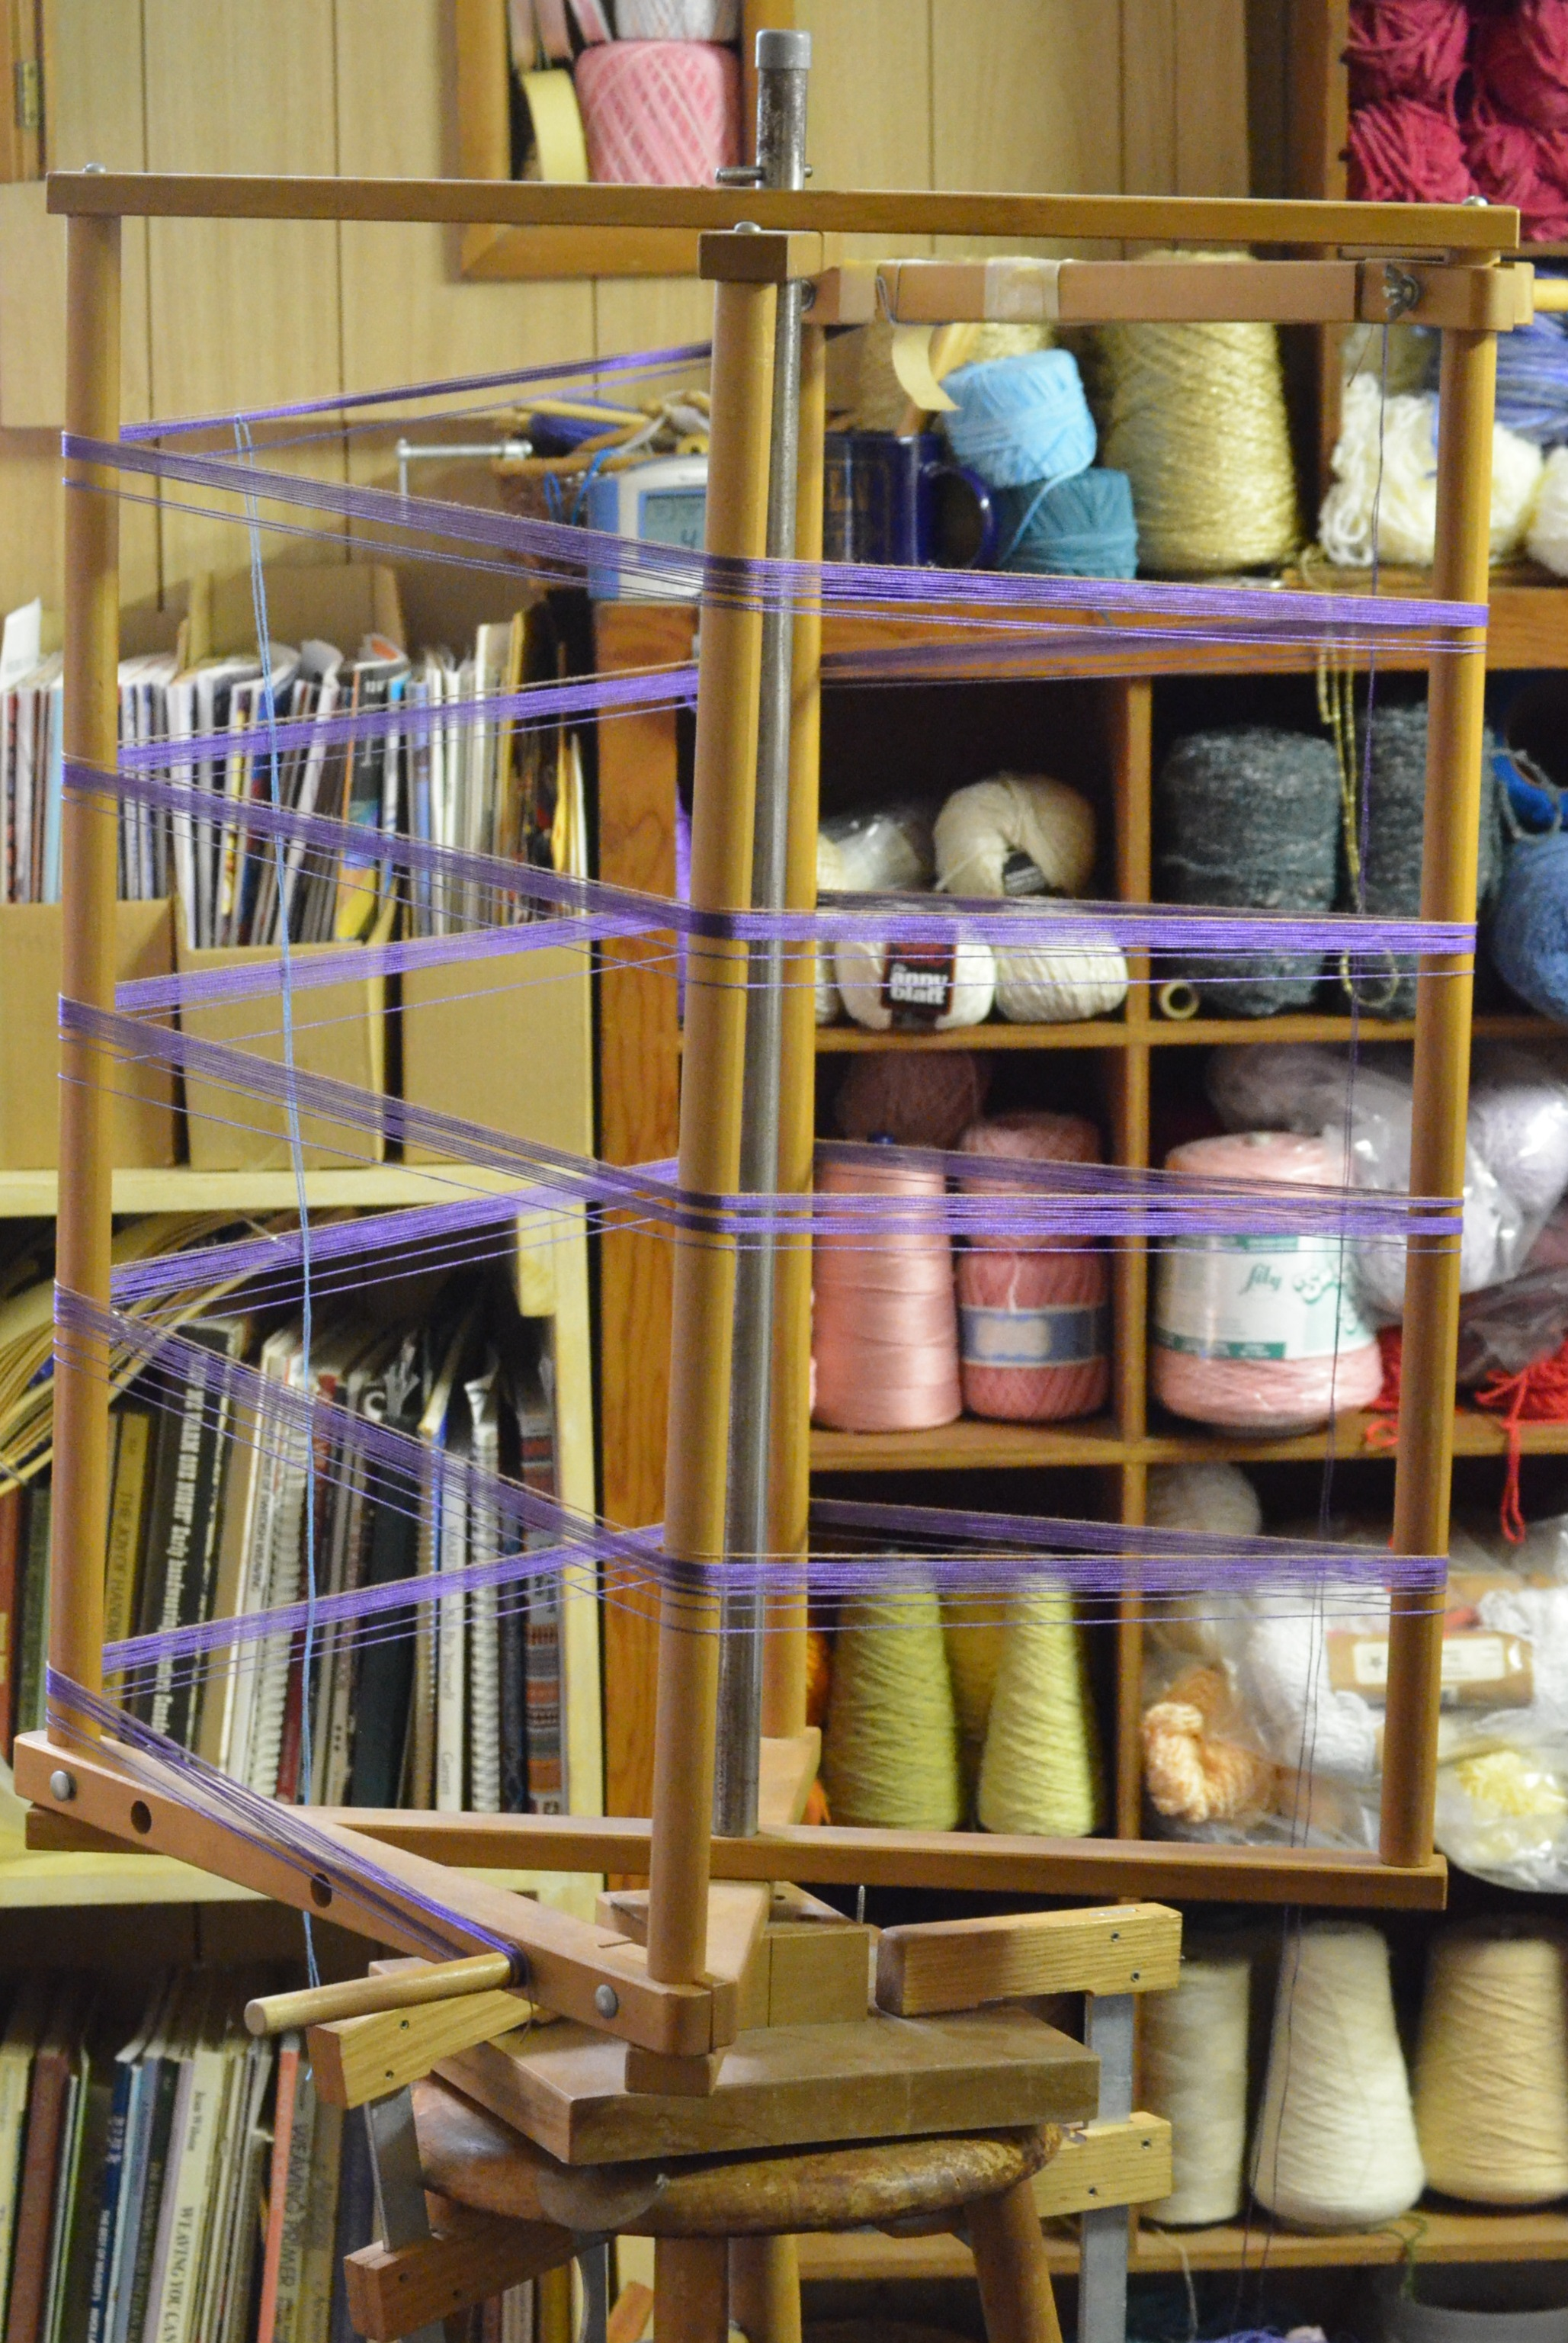 3) Next the warp thread (the thread used to dress the loom) must be measured out.